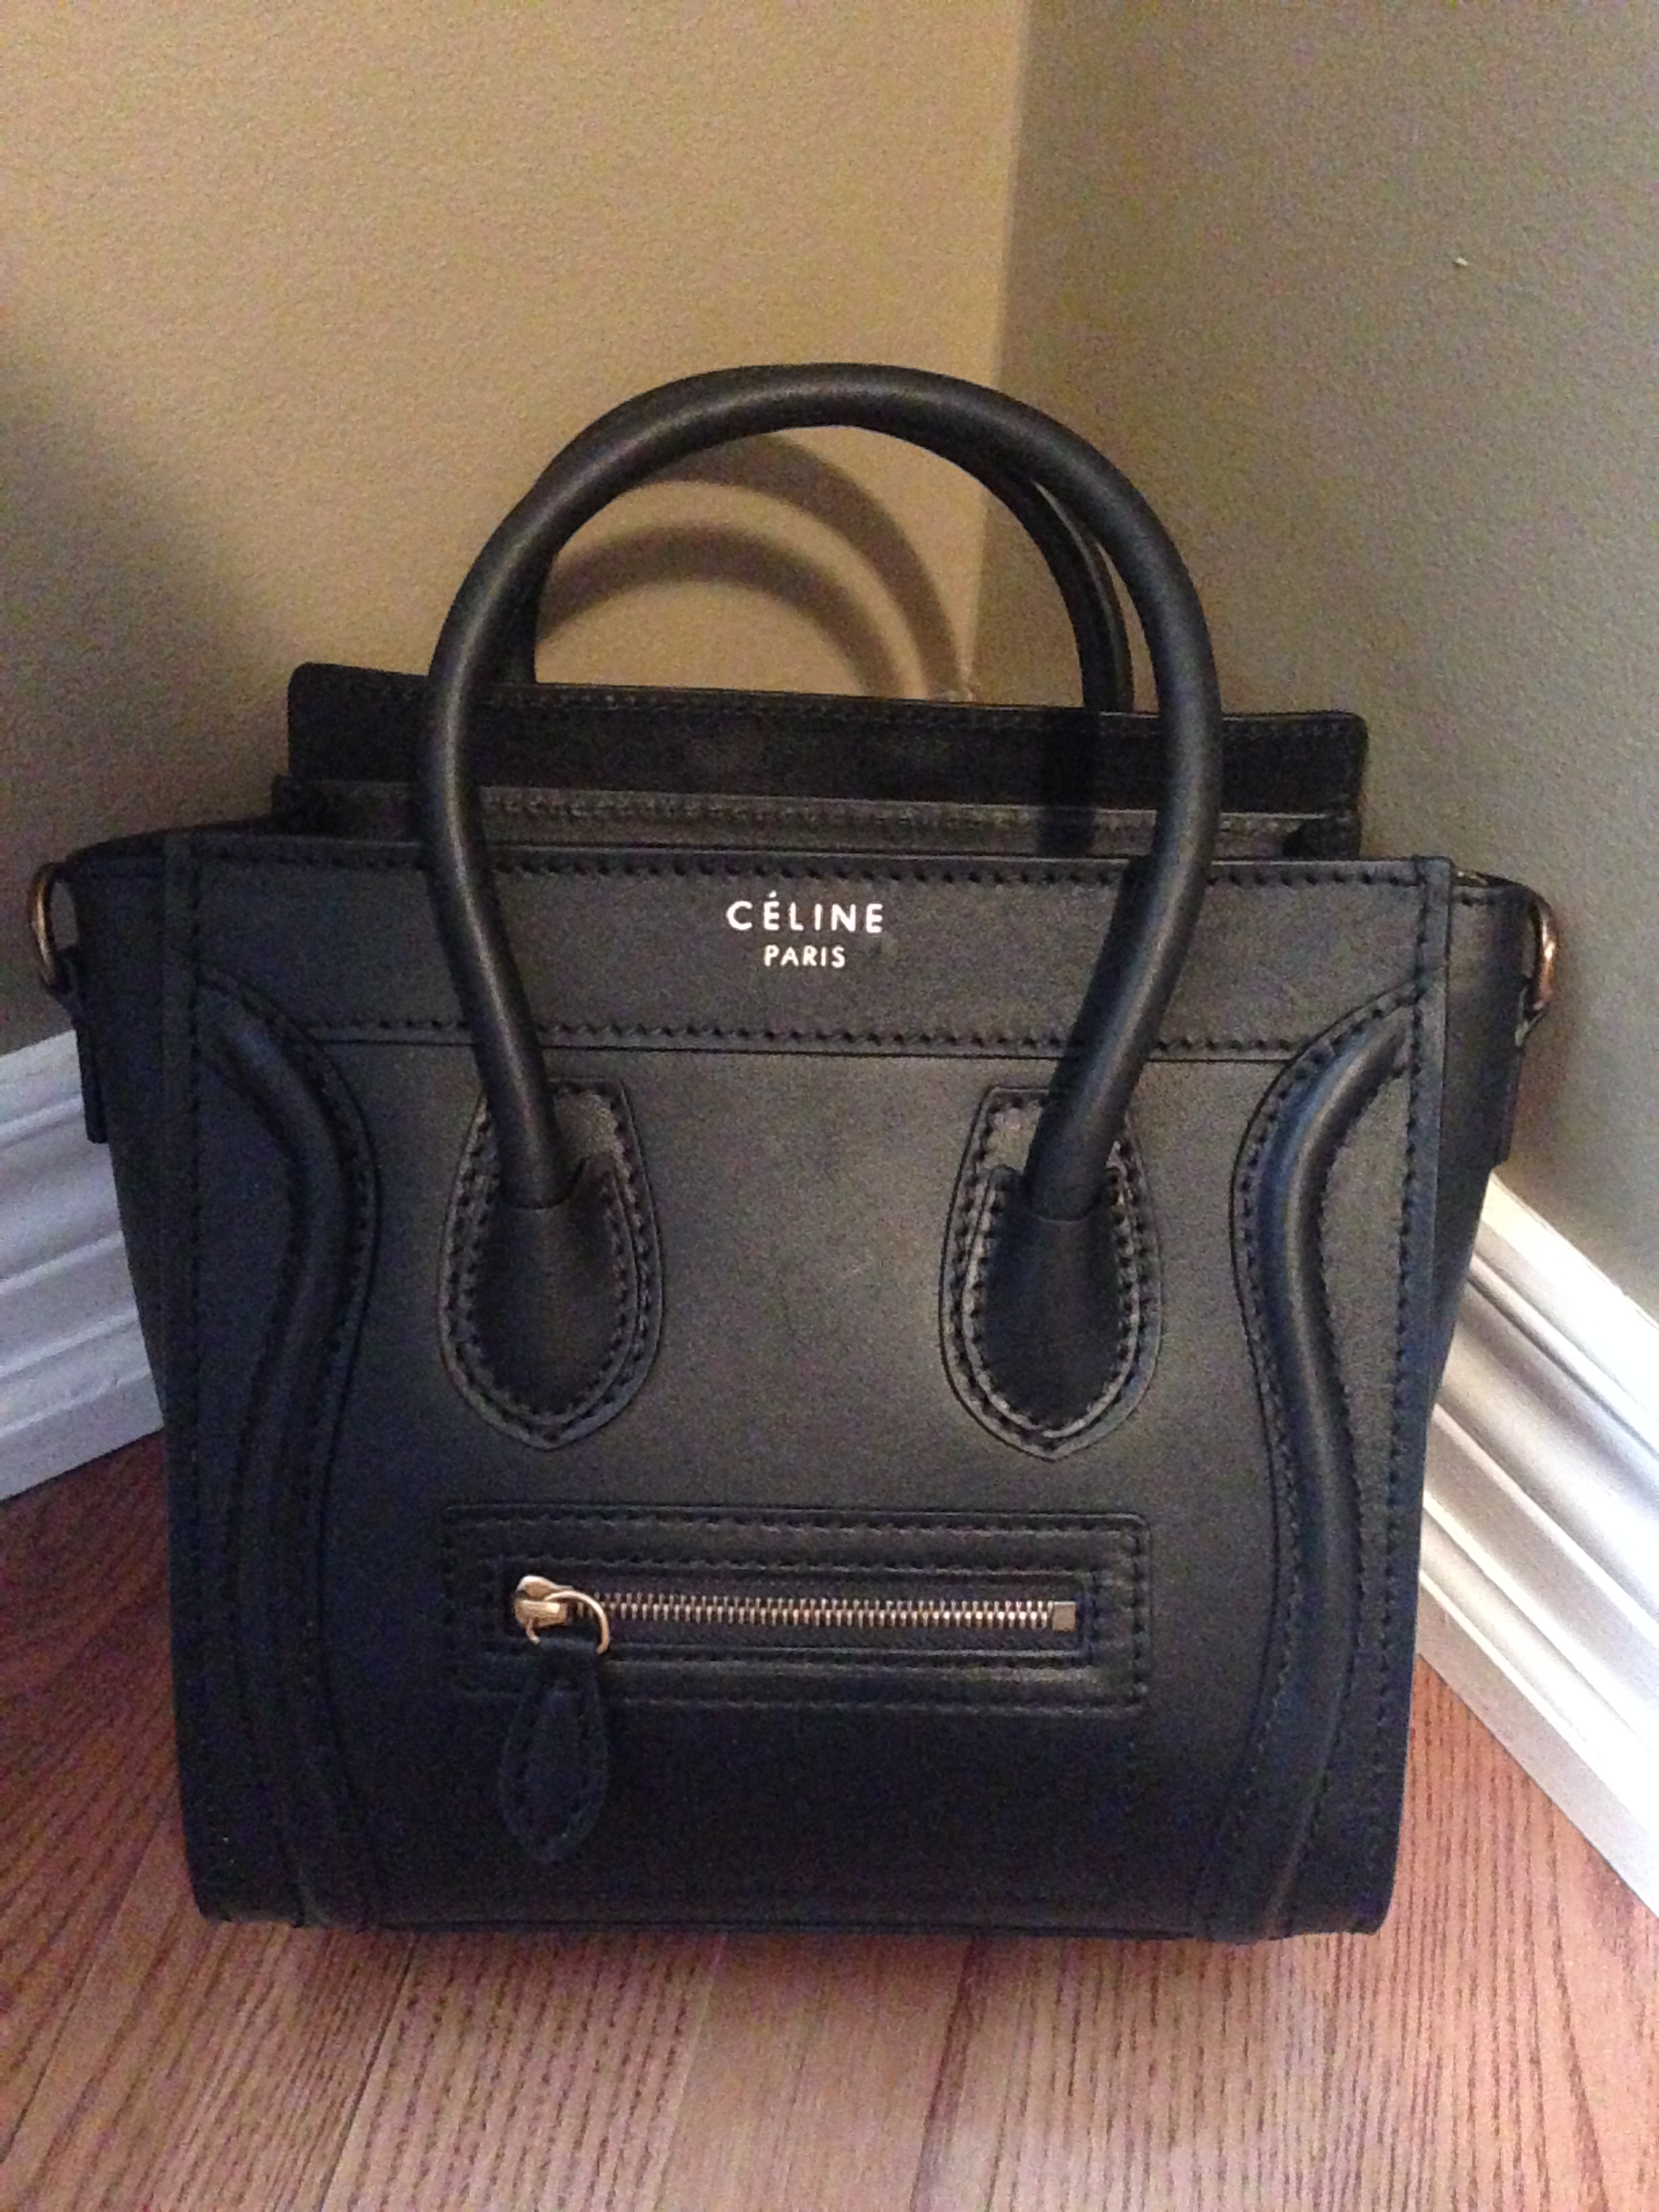 replica celine bags cheap - Celine \u2013 Authentic \u0026amp; Replica Bags \u0026amp; Replica Handbags Reviews by ...